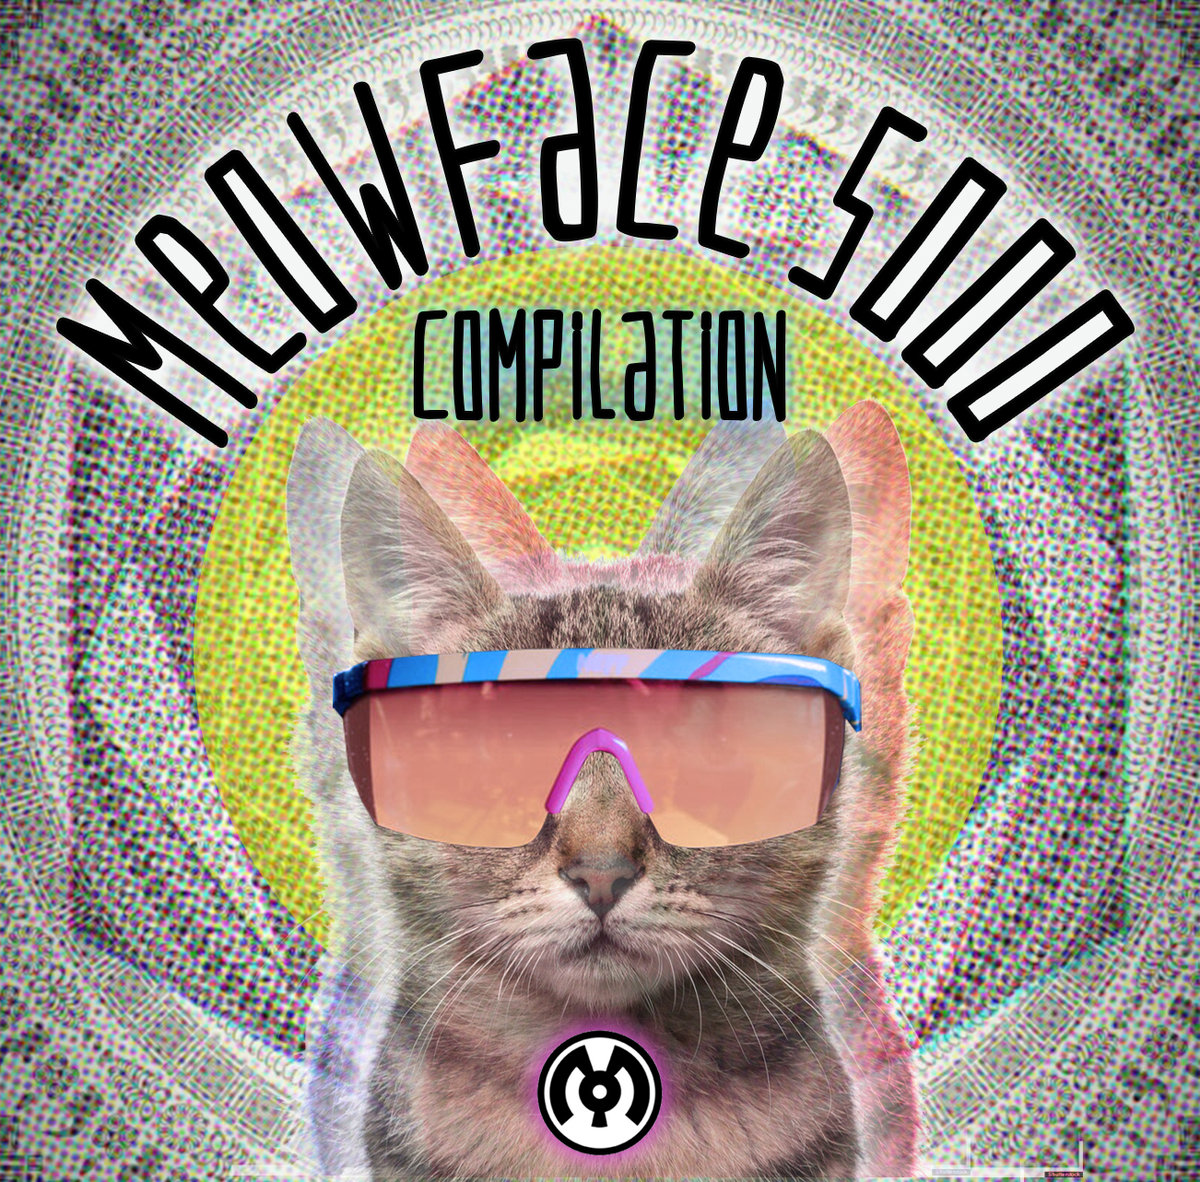 Aversive - Self Defense @ 'MeowFace 5000' album (electronic, dubstep)